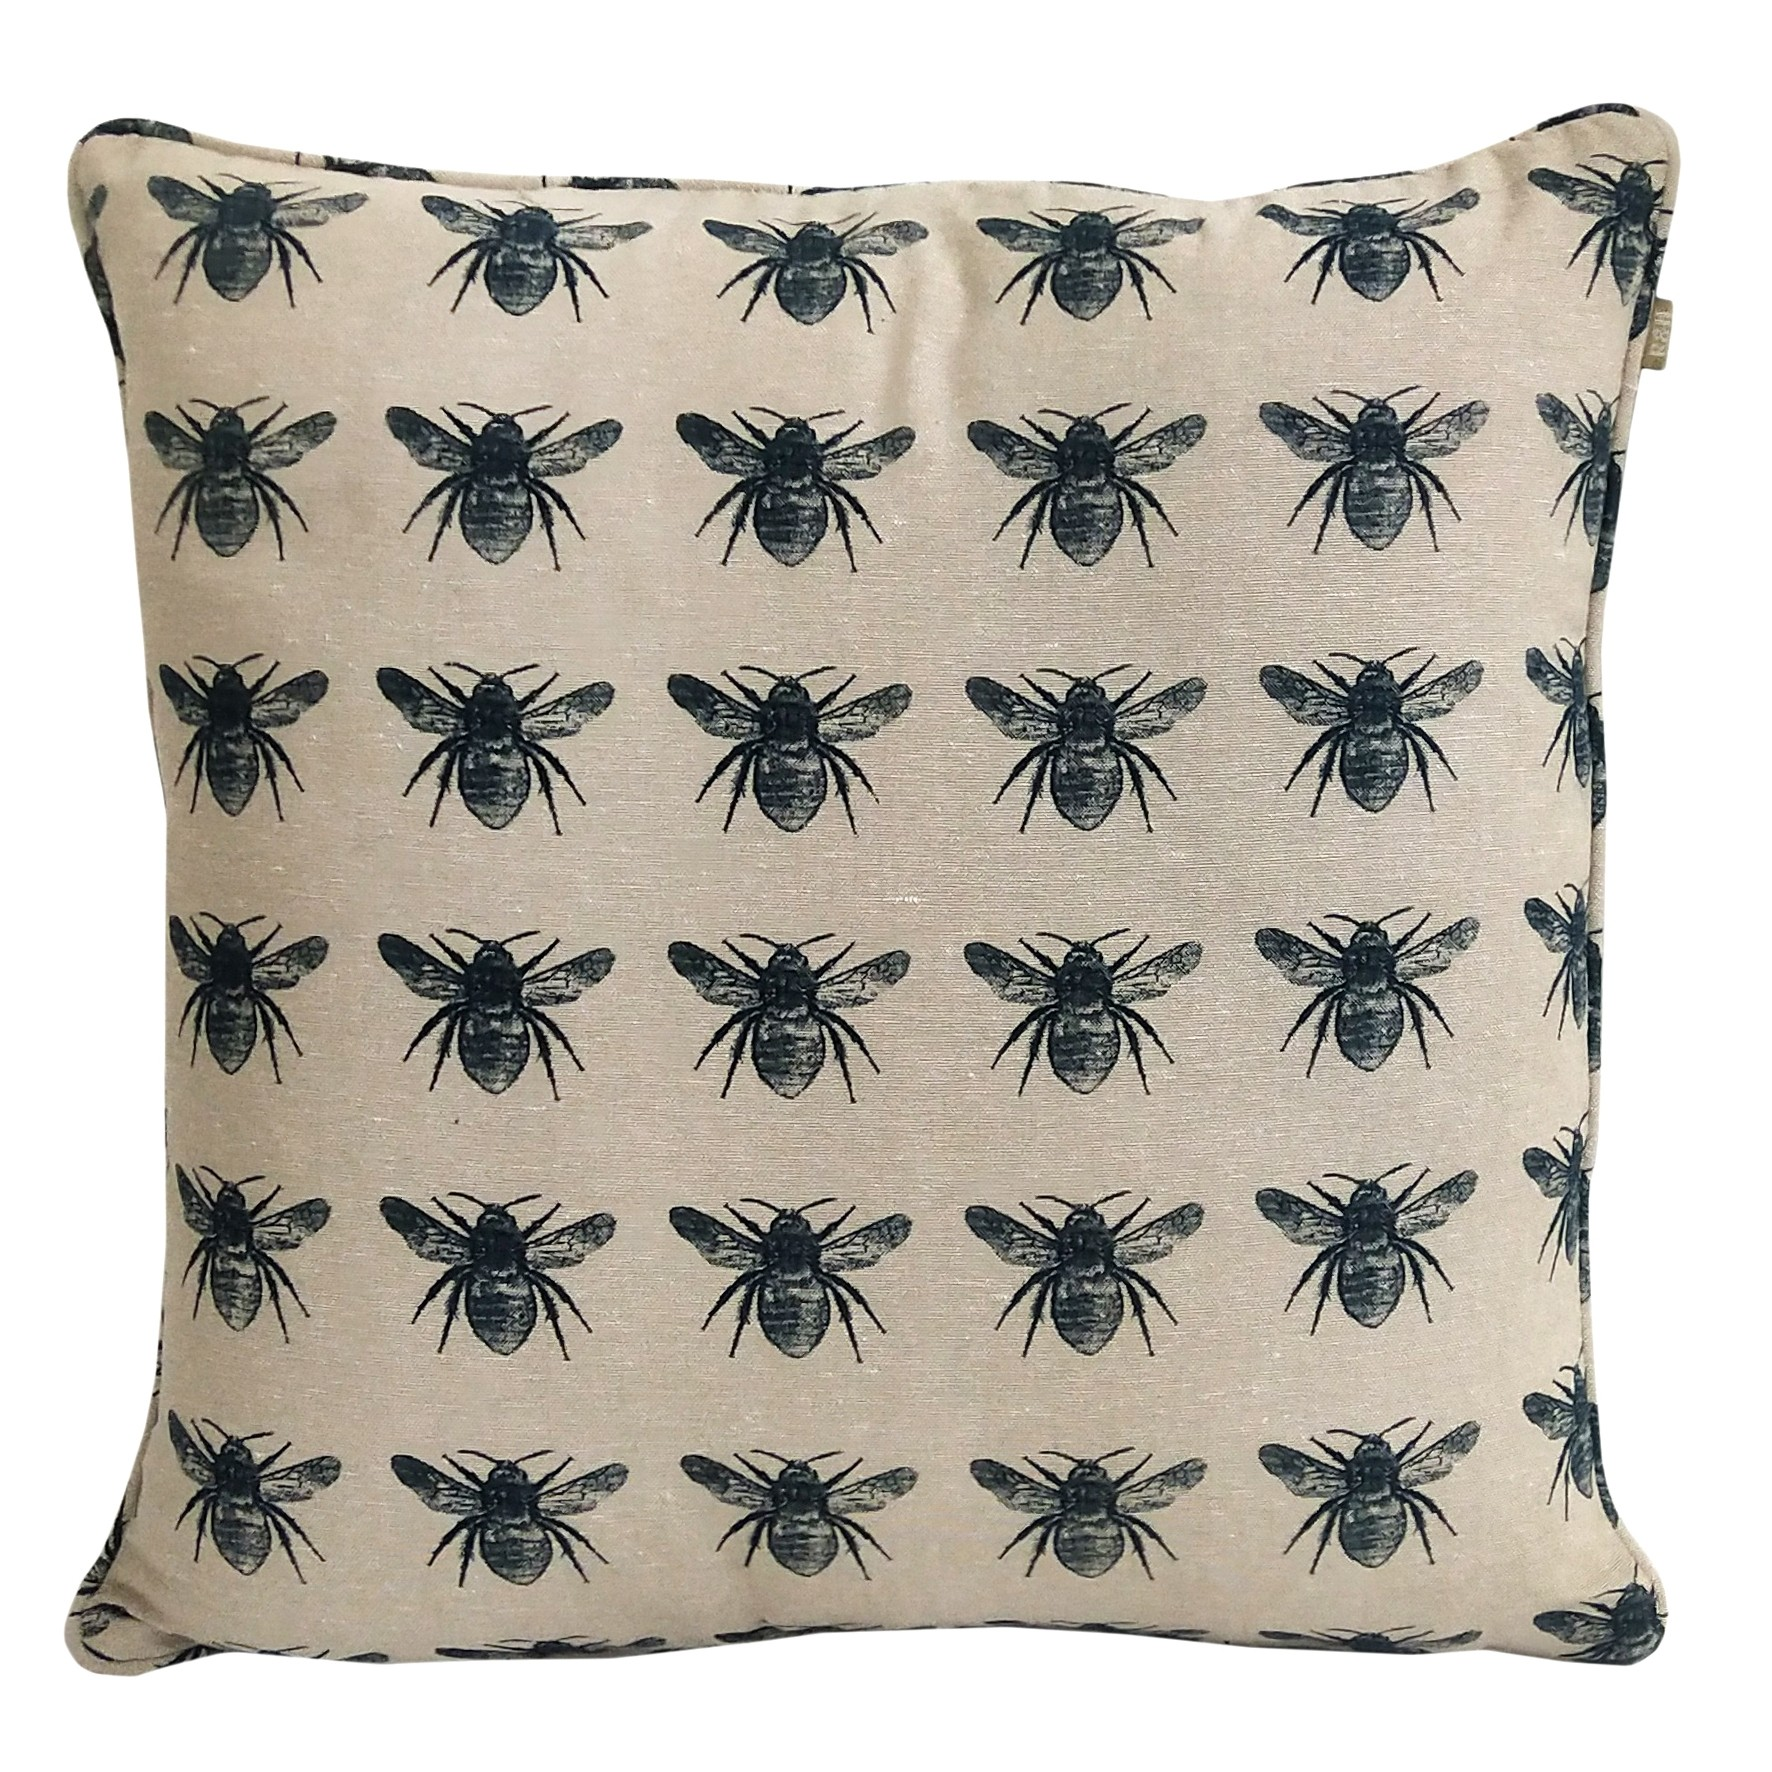 Honey Bee Cushion in Prussian Blue